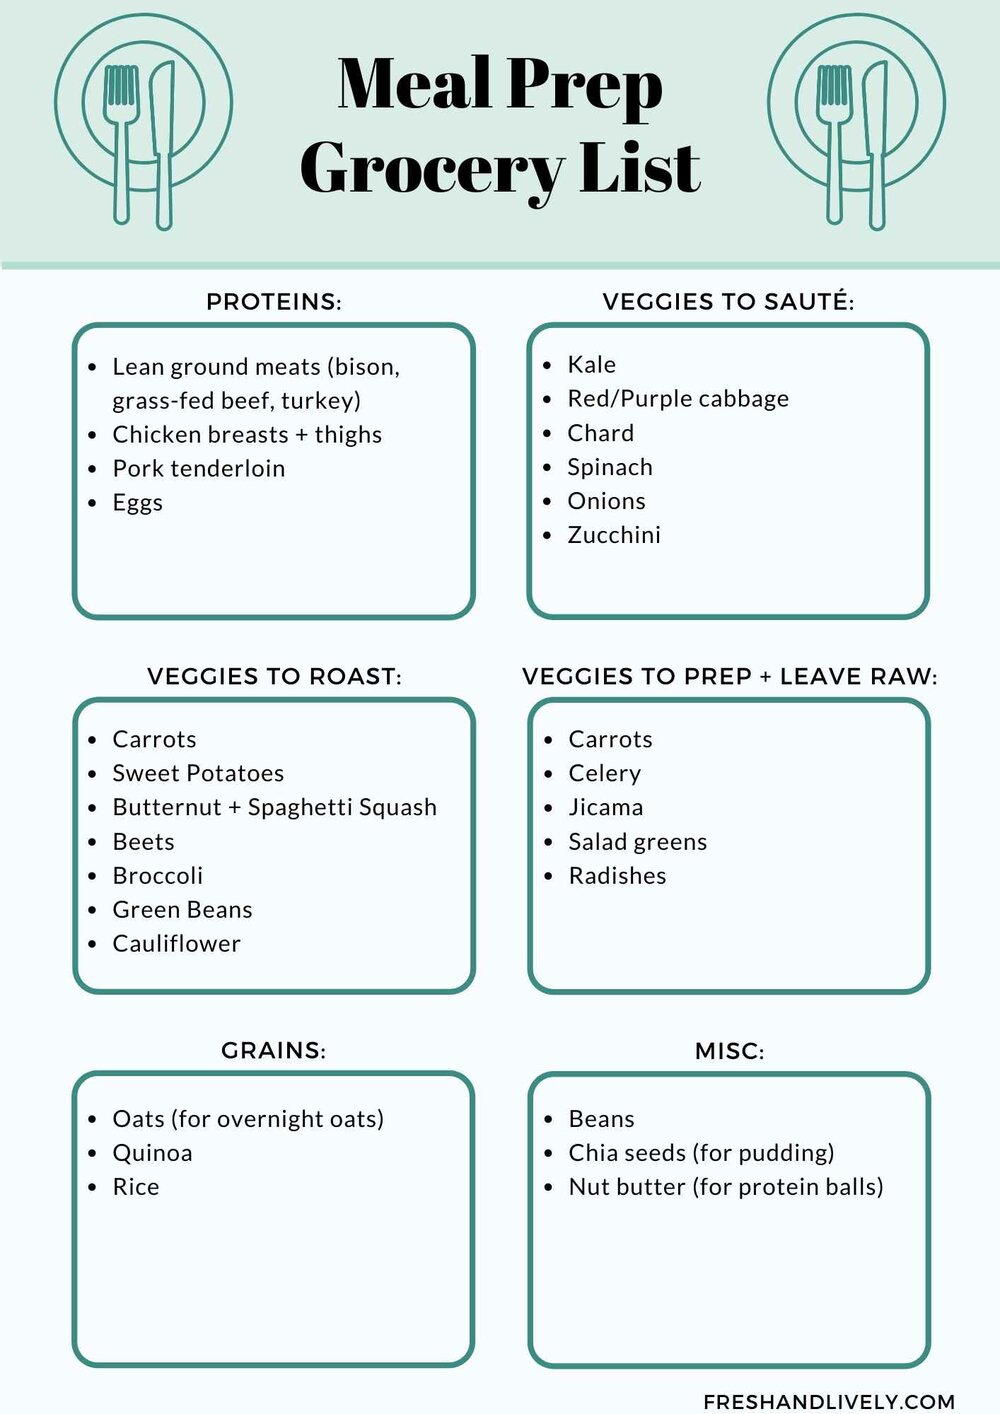 A meal prep grocery list of suggested staples to prepare for a week's worth of healthy meals.